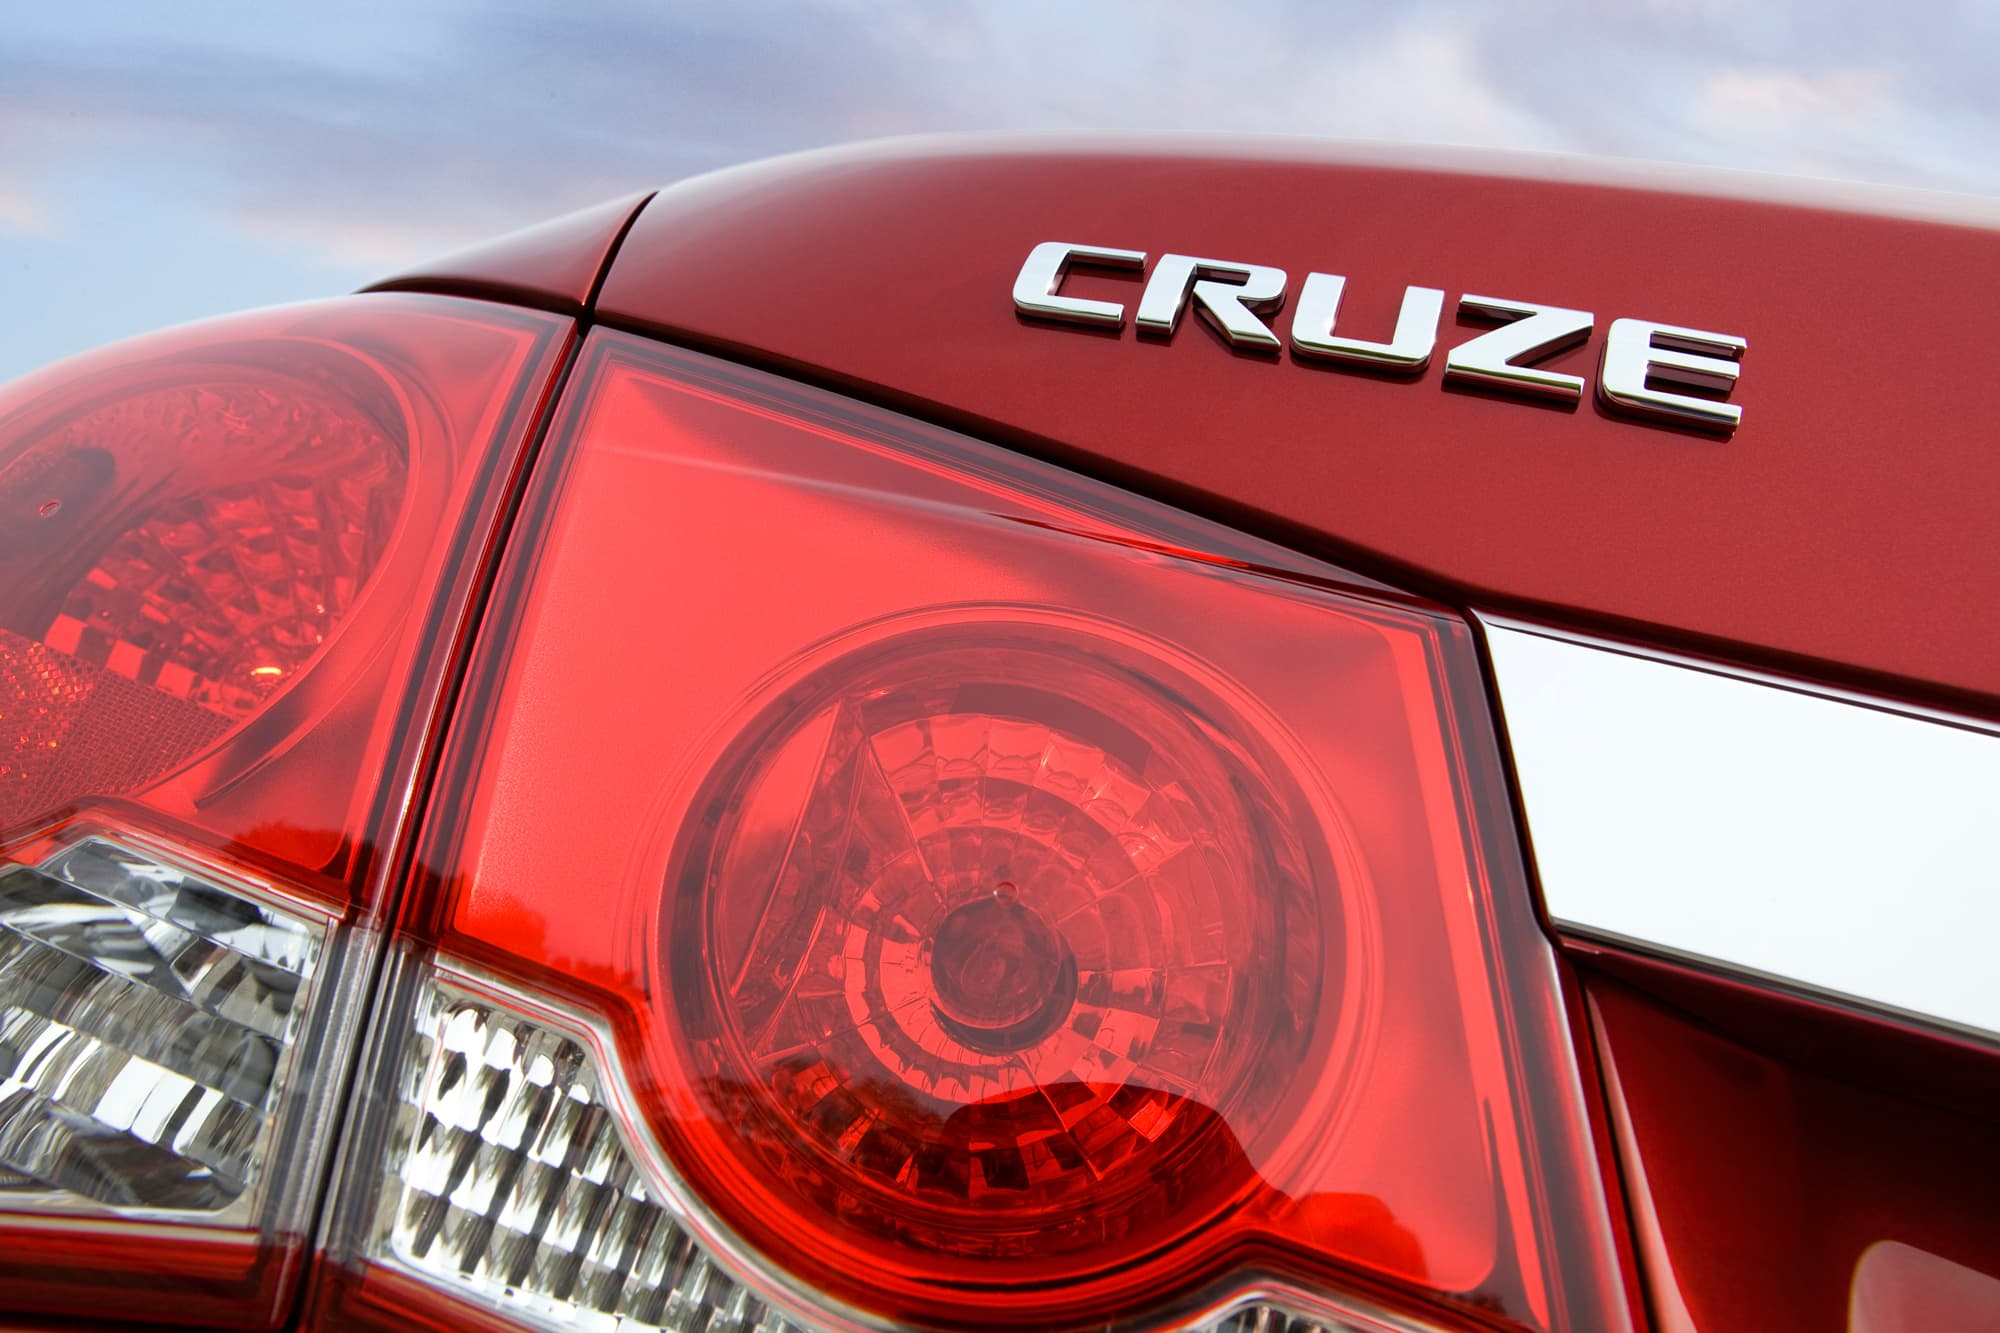 GM stops selling certain Cruze small cars, gives no reason